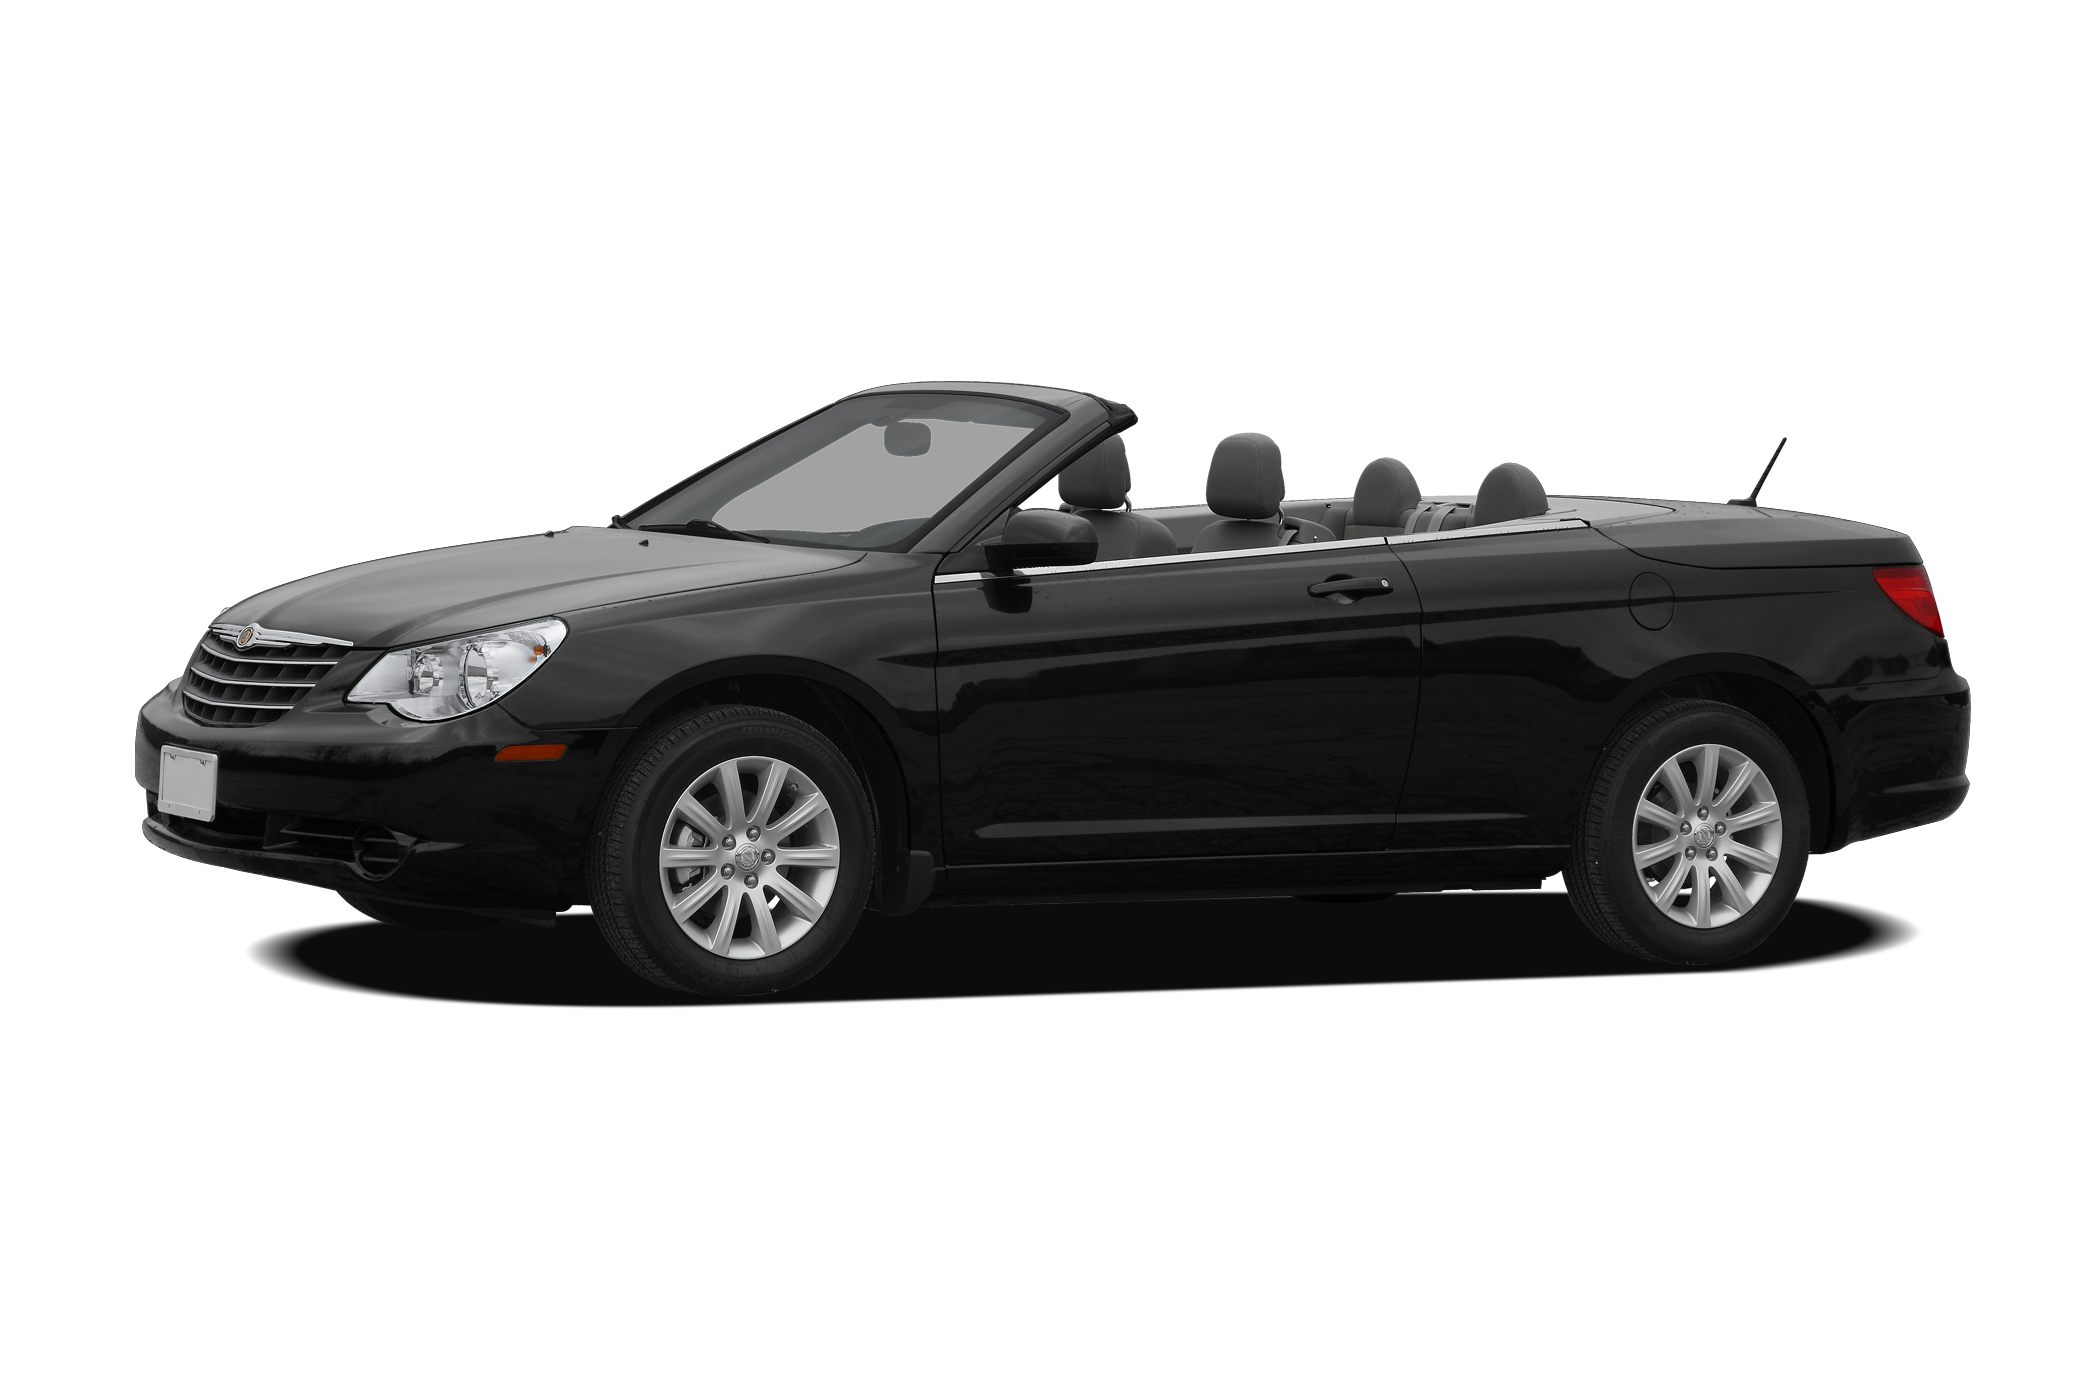 2010 Chrysler Sebring Touring Sedan for sale in WENDELL for $10,950 with 41,715 miles